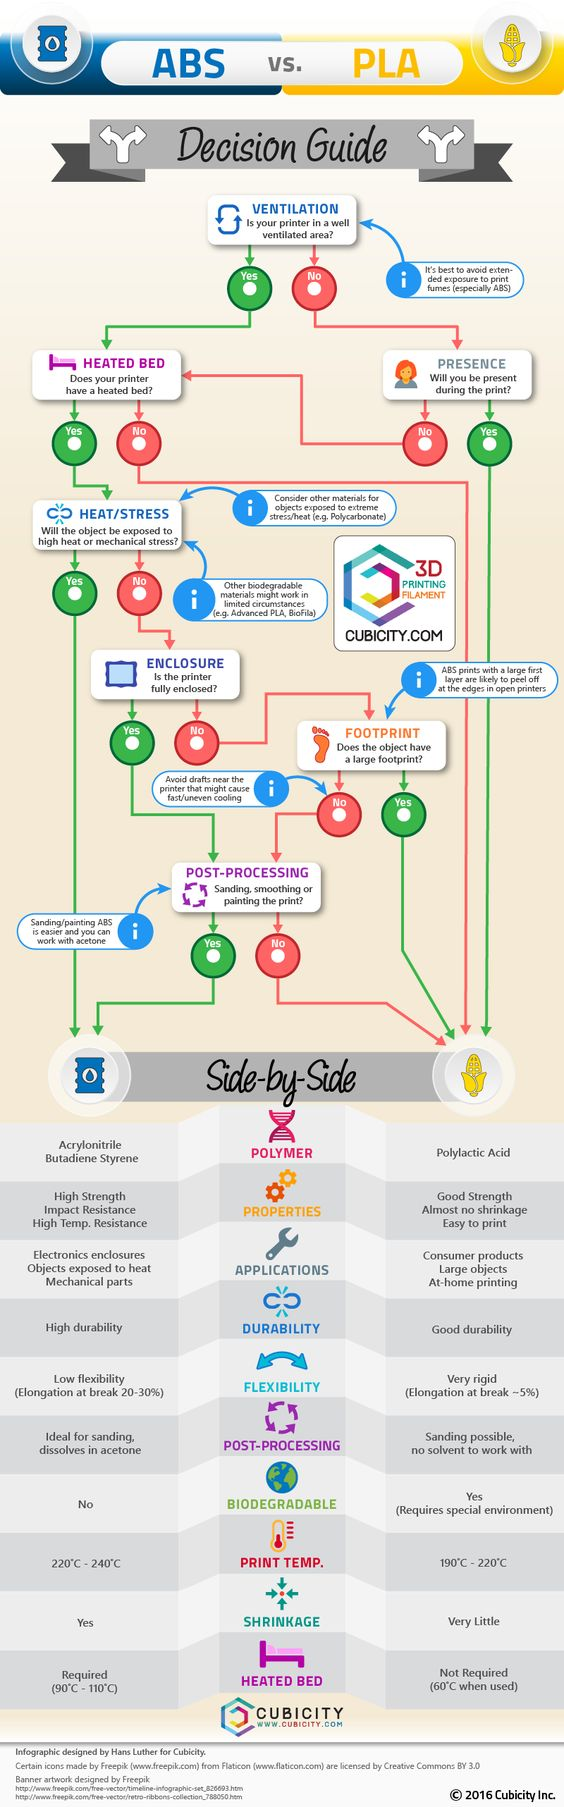 ABS vs PLA Infographic Decision Guide